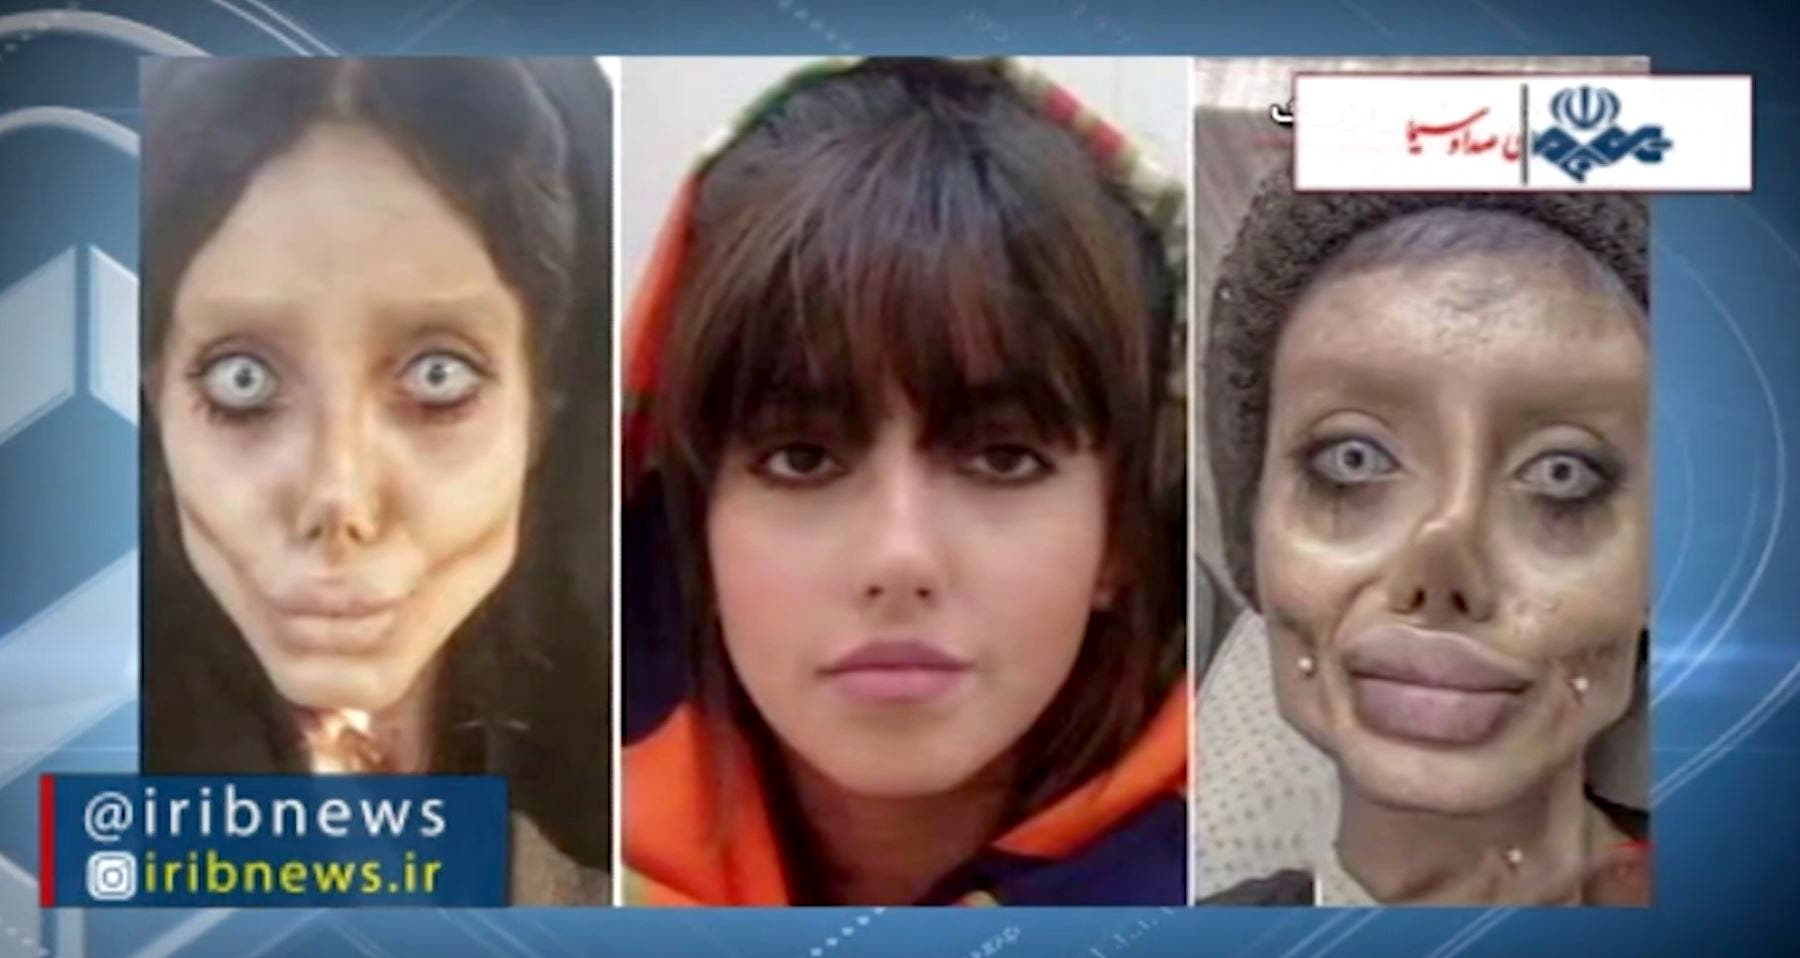 An image grab from footage obtained from Iranian State TV IRIB on October 24, 2019 shows a reproduction of pictures posted by Iranian Intagrammer Sahar Tabar of herself before (C) and after. (AFP/HO/IRIB)